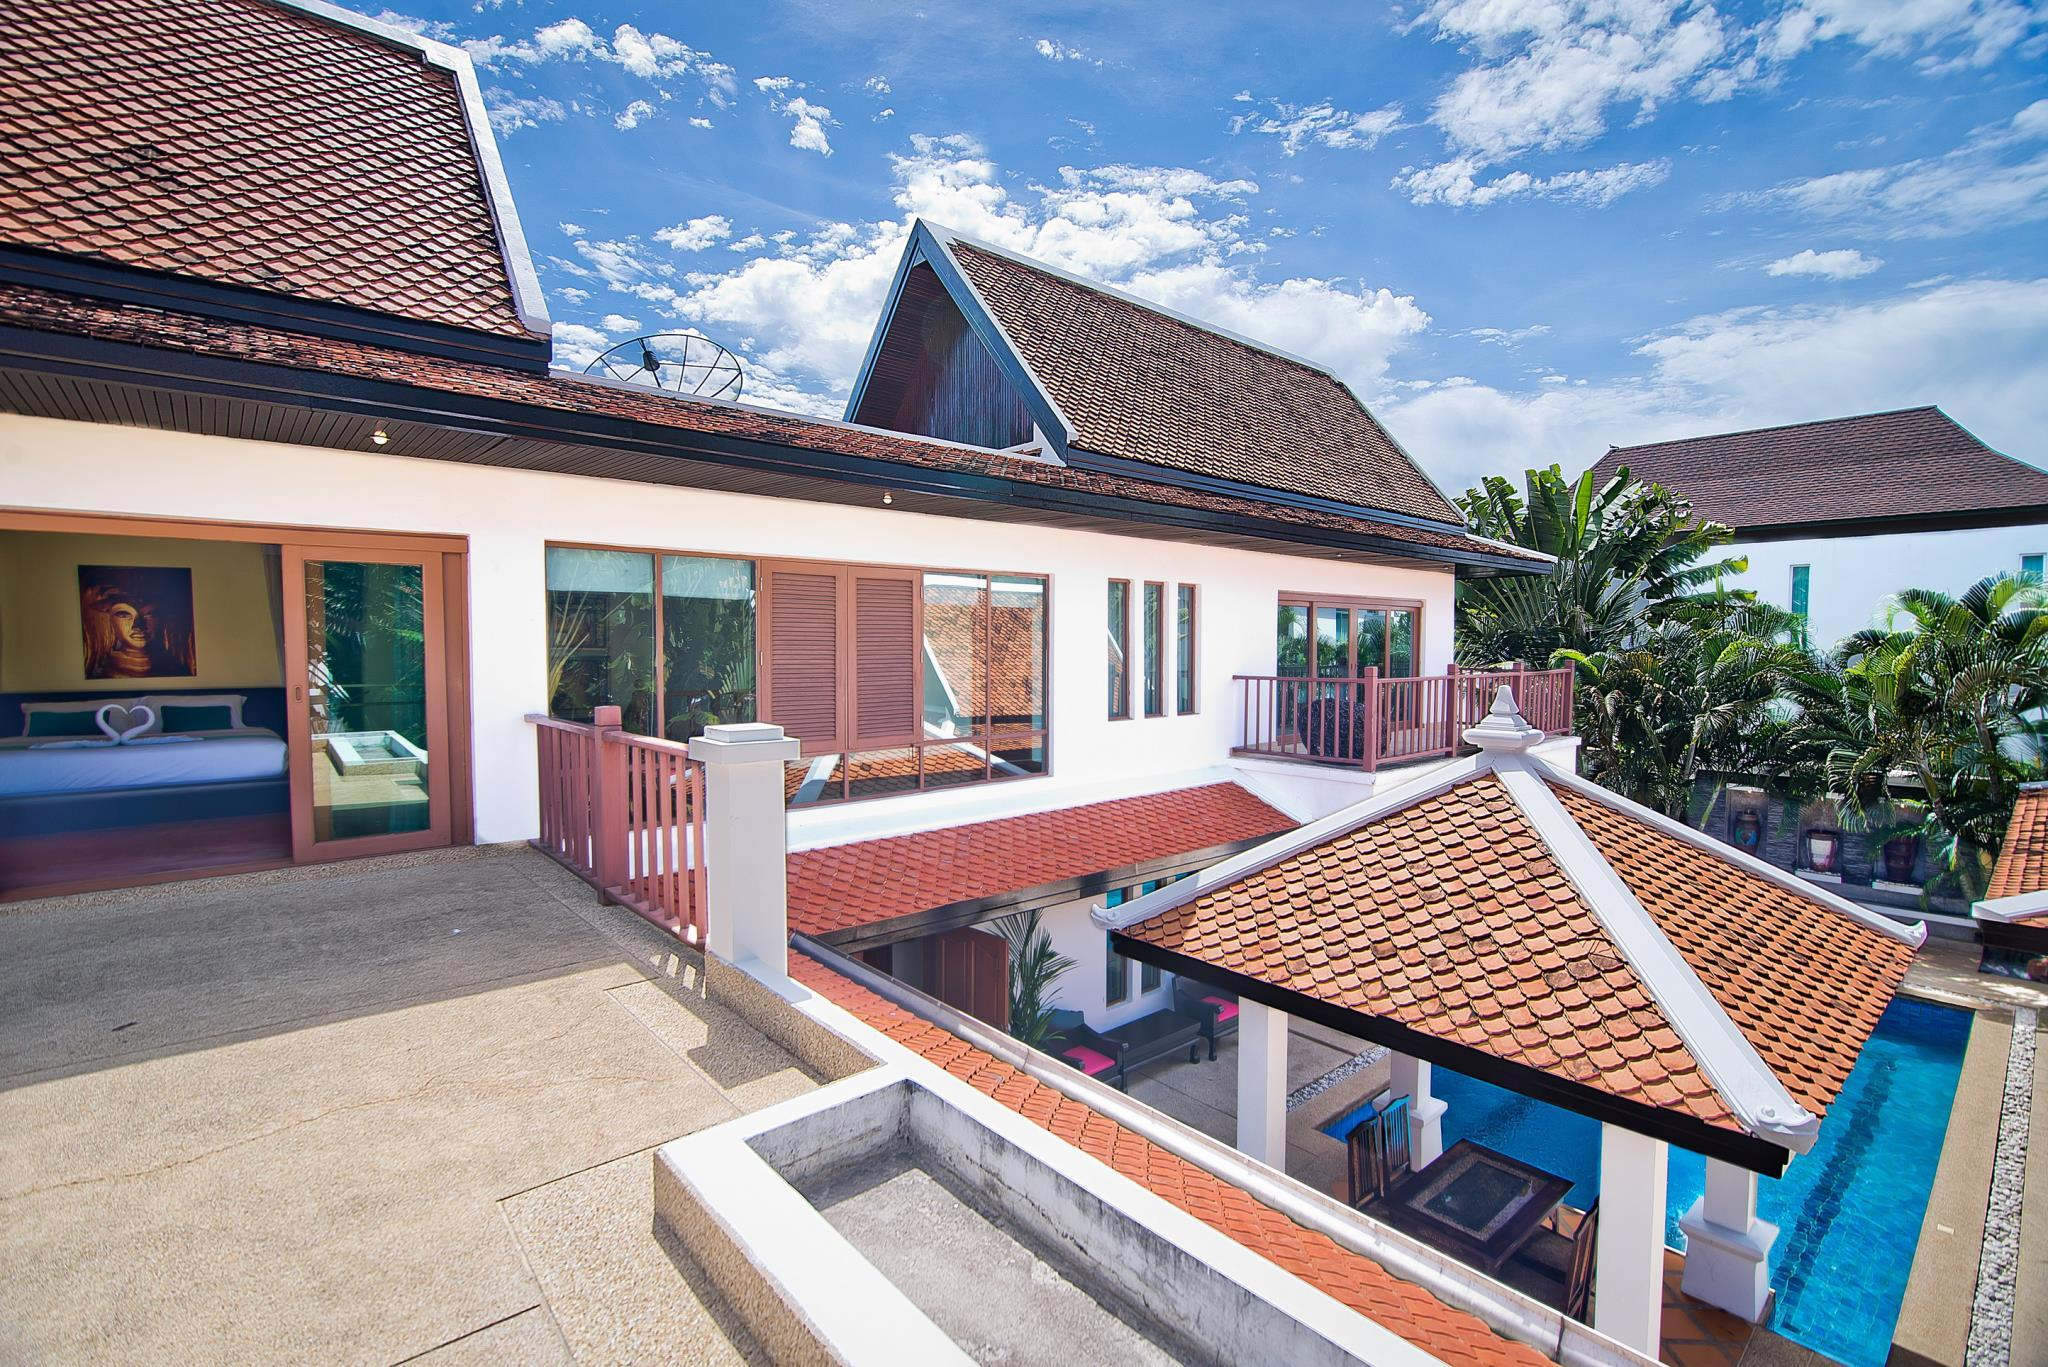 Willa z 5 sypialniami i prywatnym basenem – Na Jomtien 3 (5-Bedroom Villa Na Jomtien 3 with Private Pool)